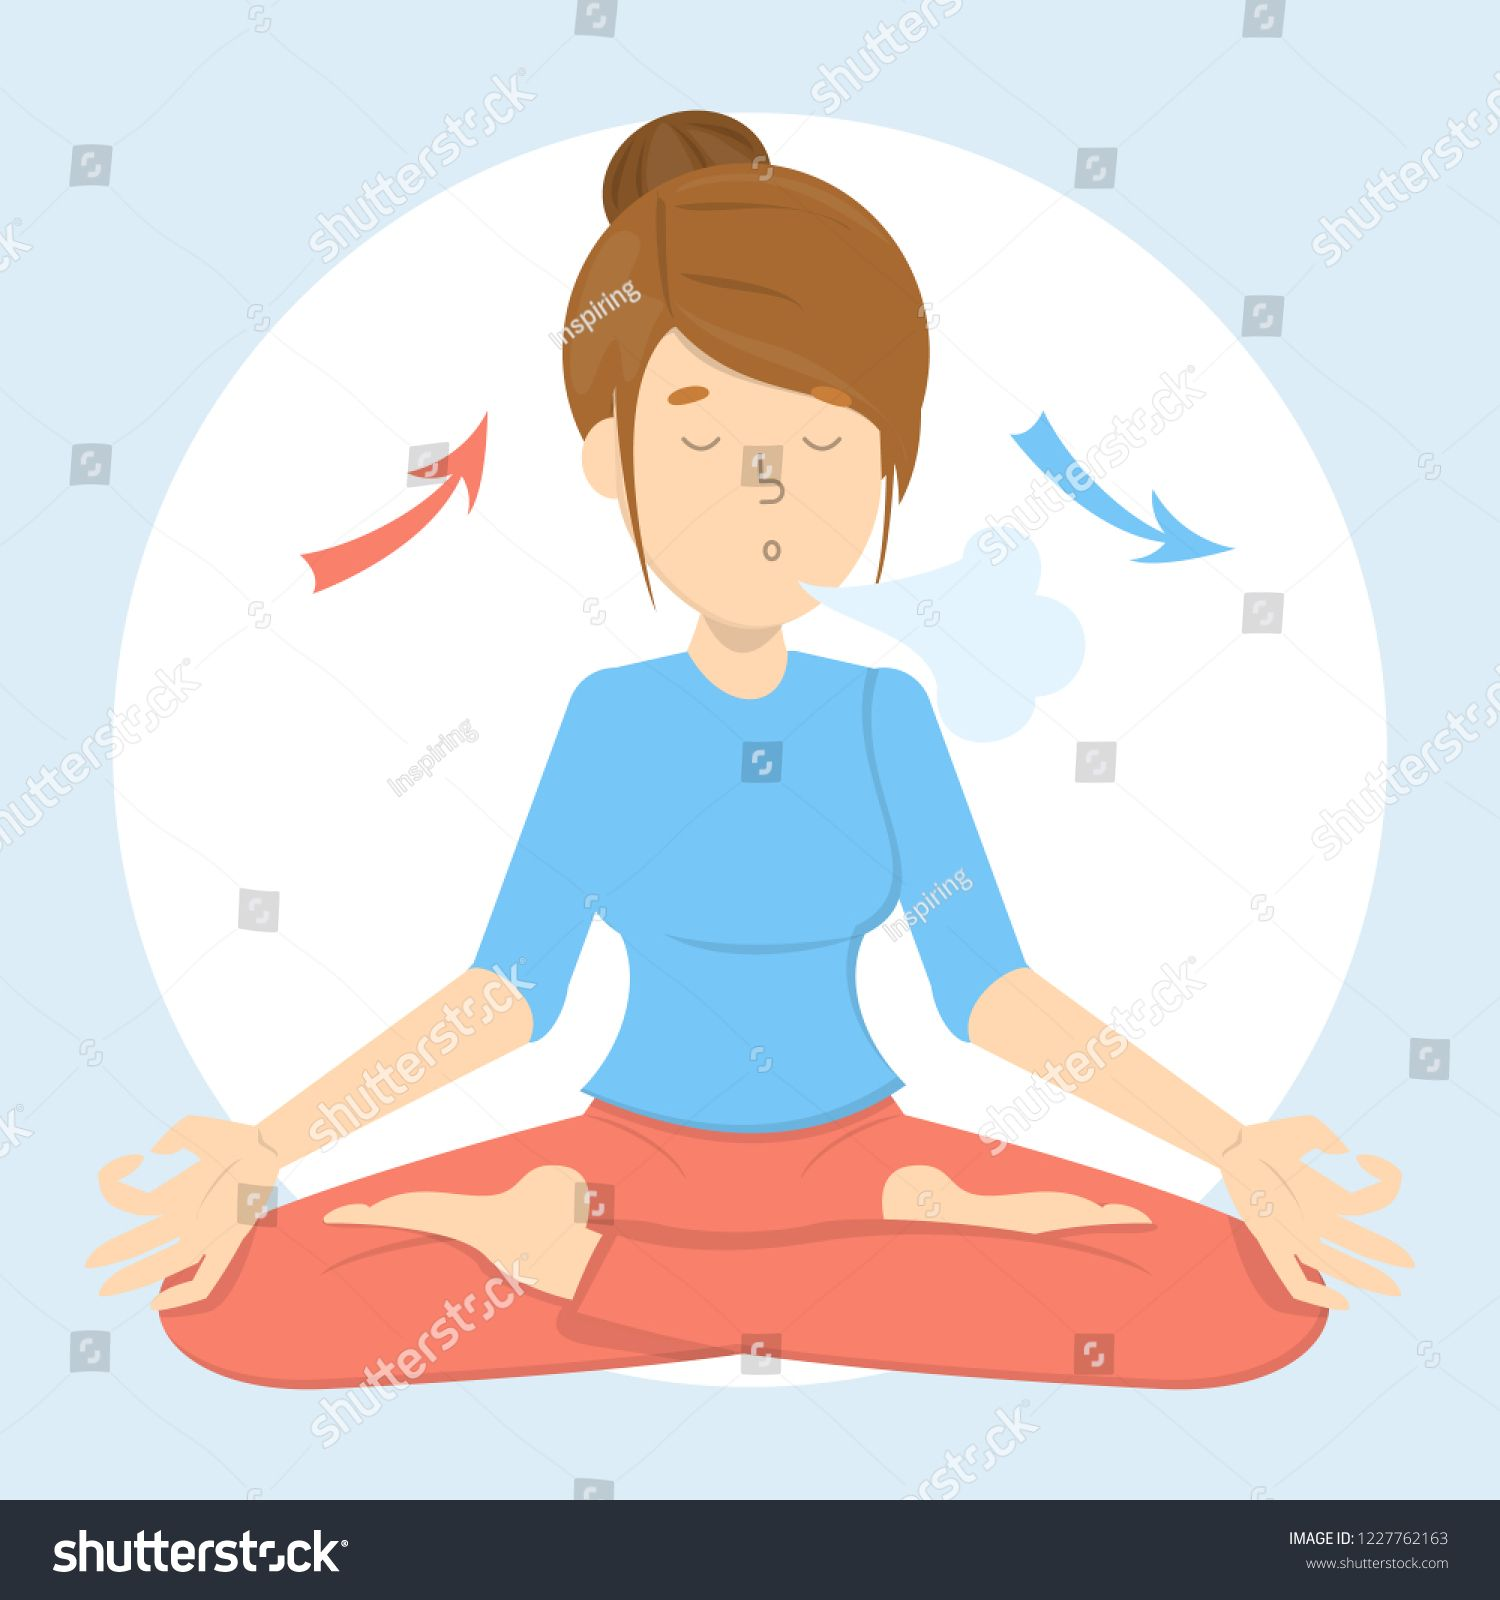 Breath Exercise For Good Relaxation Breathe In And Out For Relax Deep Breathing Method And Body Sca Breath In Breath Out Relaxation Breathing Deep Relaxation